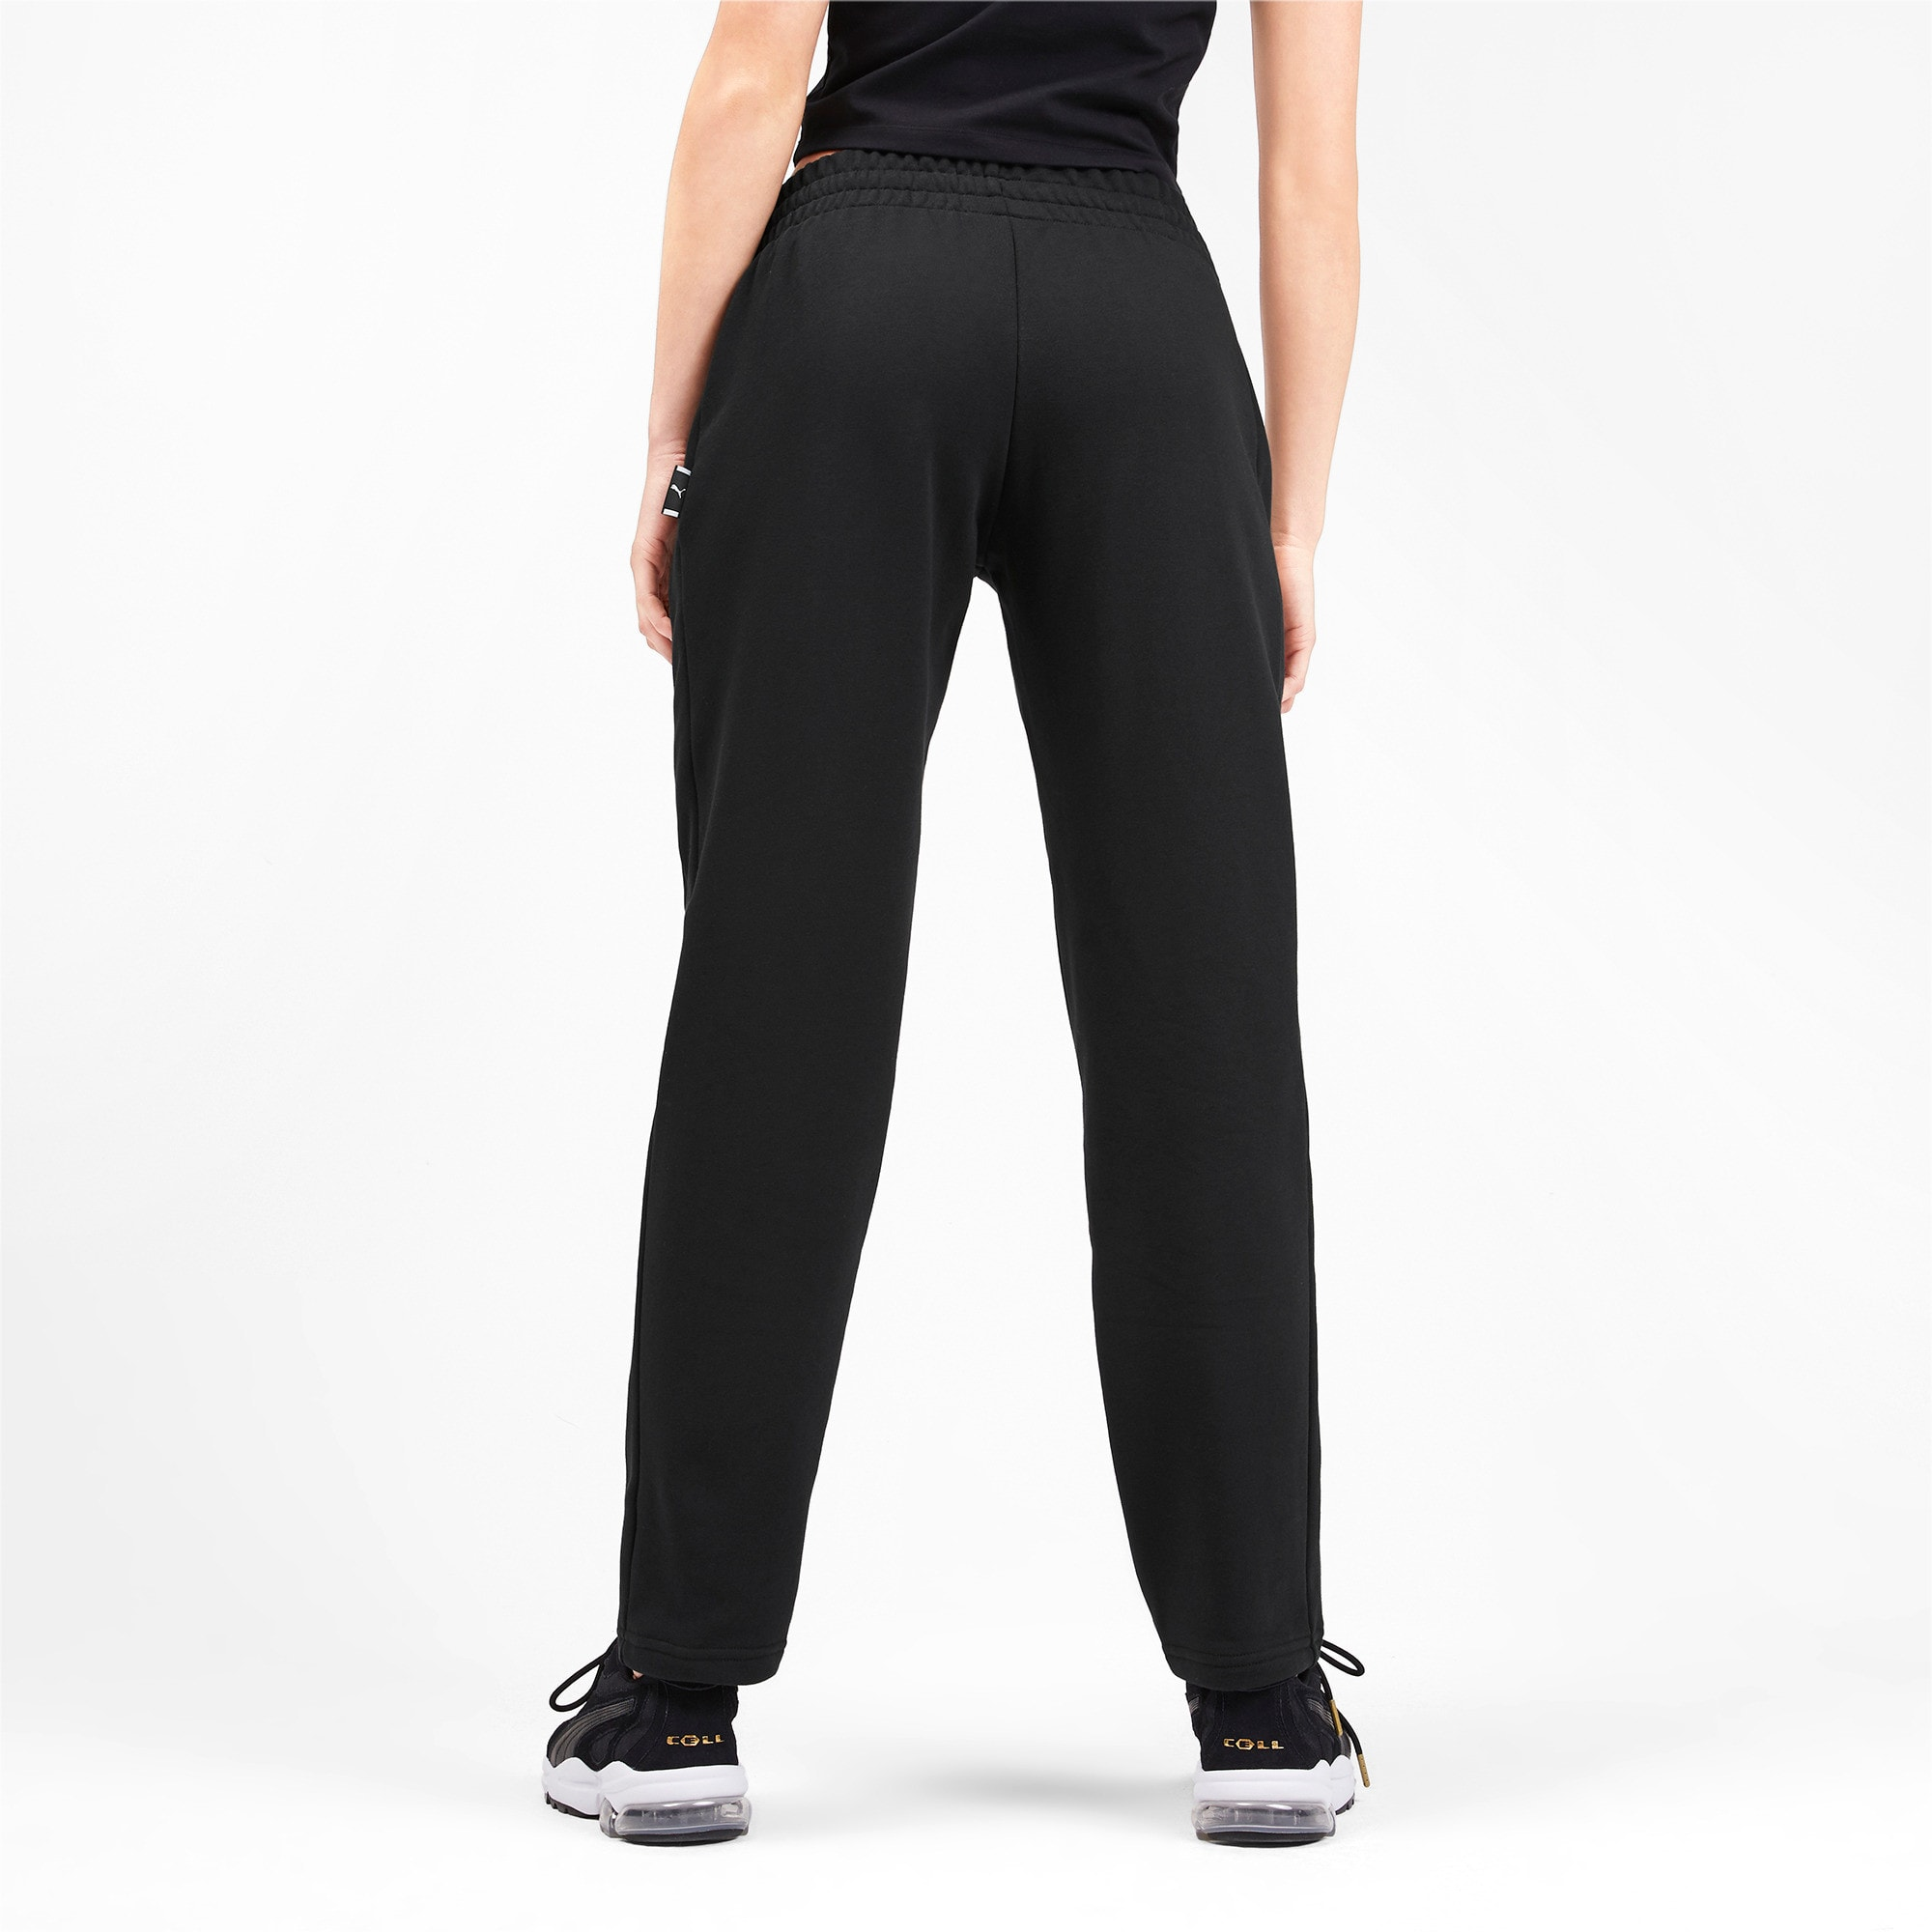 Thumbnail 2 of Downtown Knitted Women's Pants, Puma Black, medium